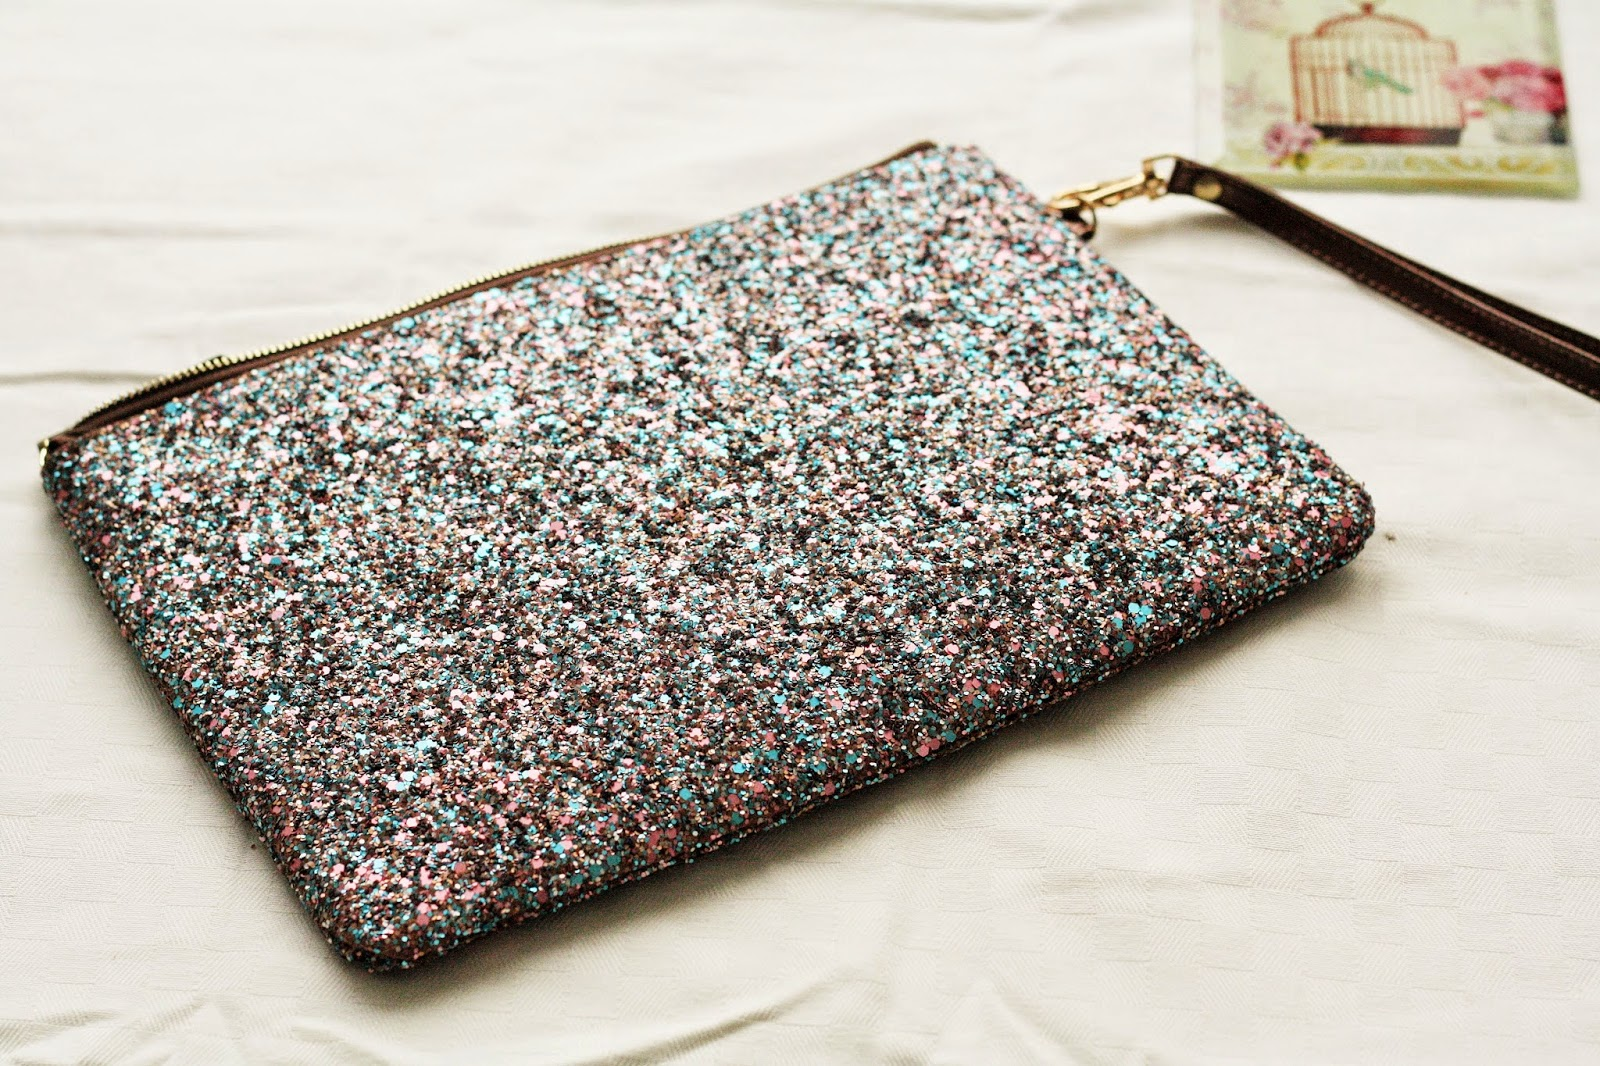 Sparkly clutch bag Aldo